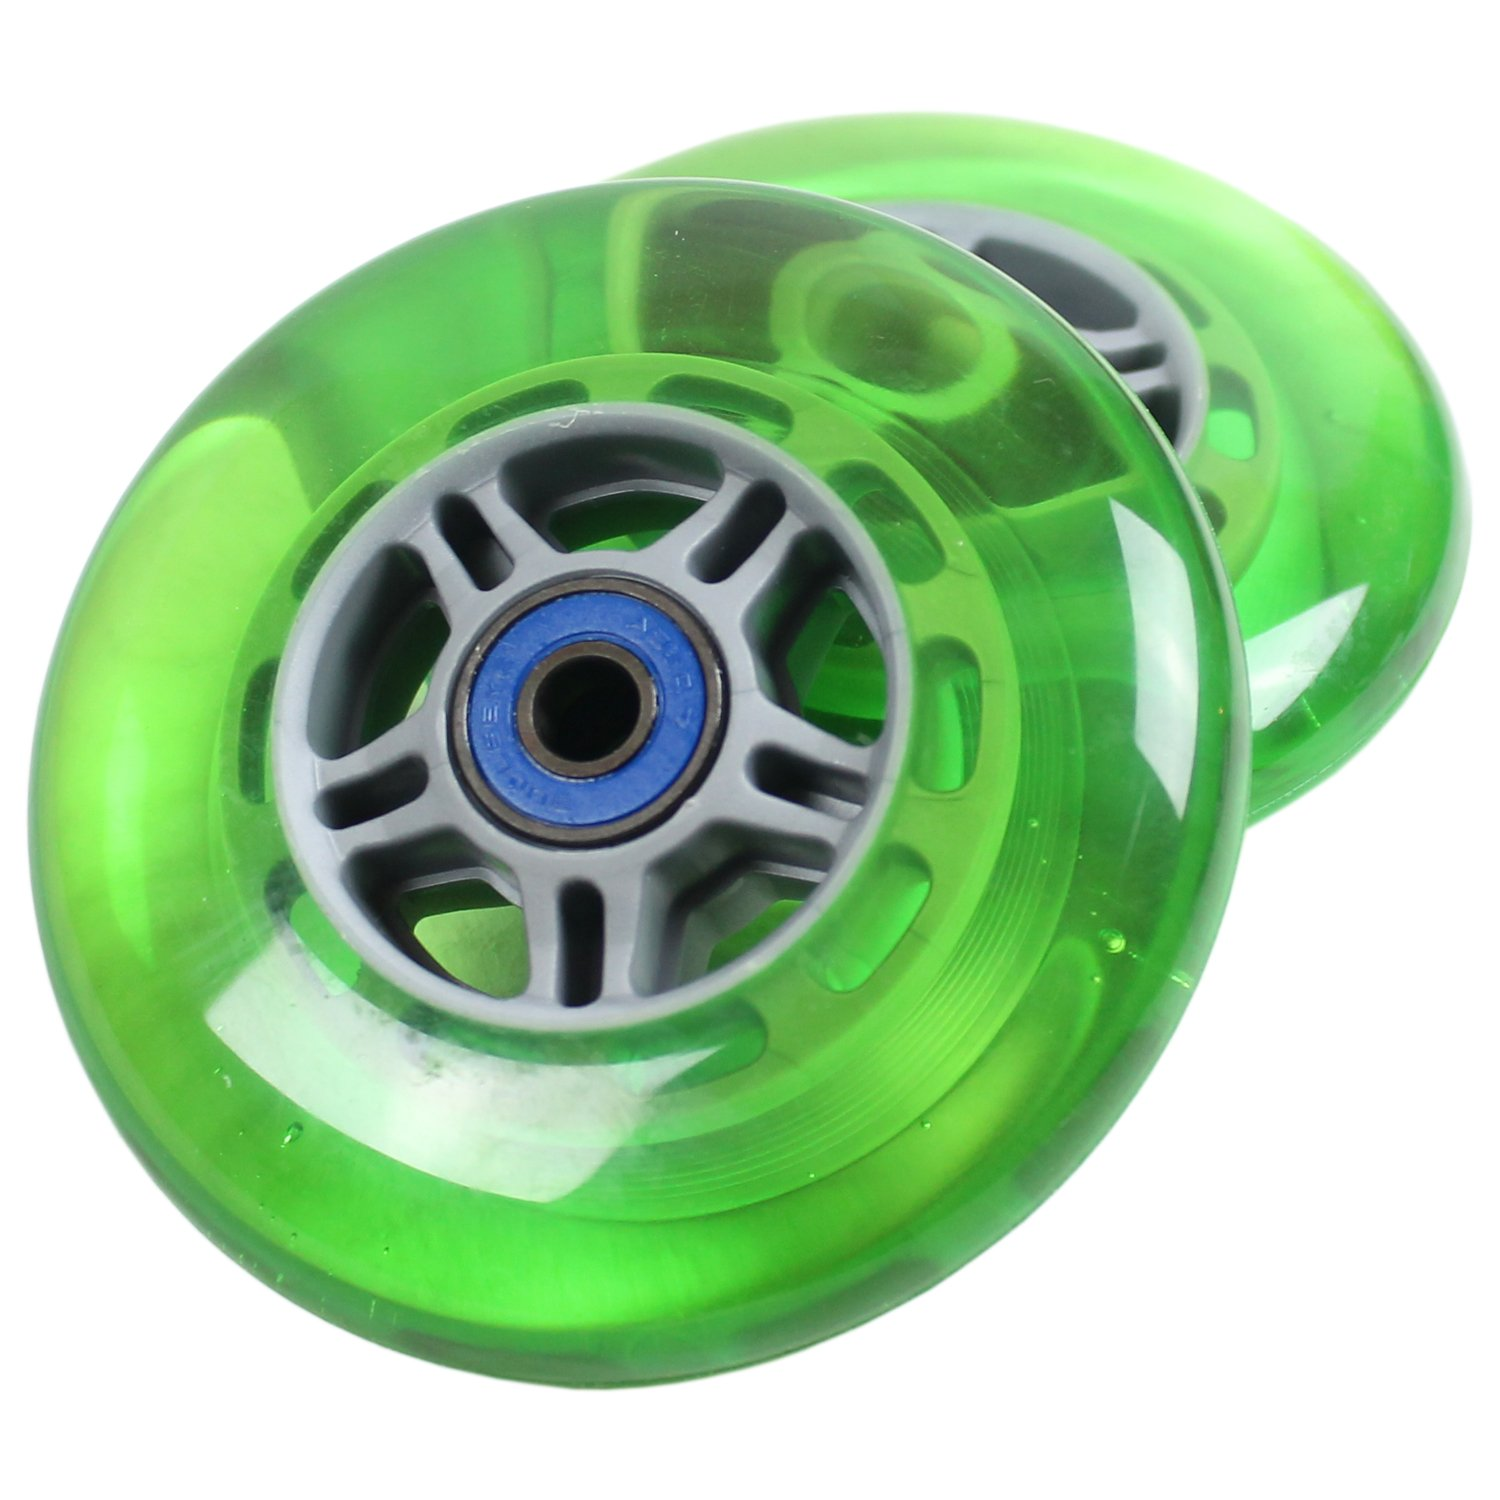 UPGRADE WHEELS for RAZOR SCOOTER Green ABEC 7 BEARINGS